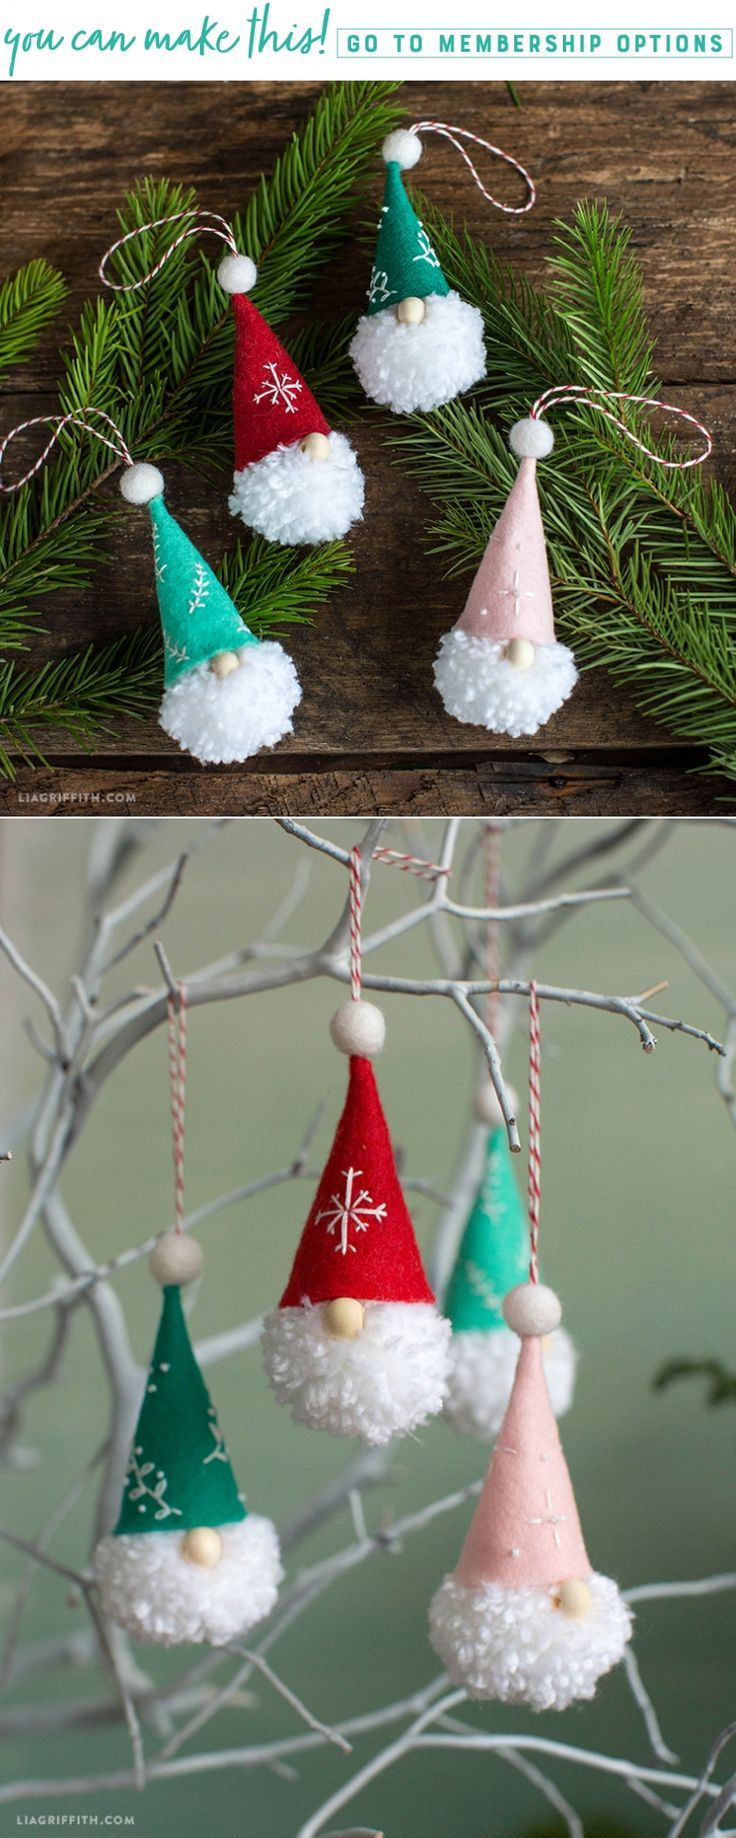 2341 best Christmas images on Pinterest | Xmas, Christmas ornaments ...